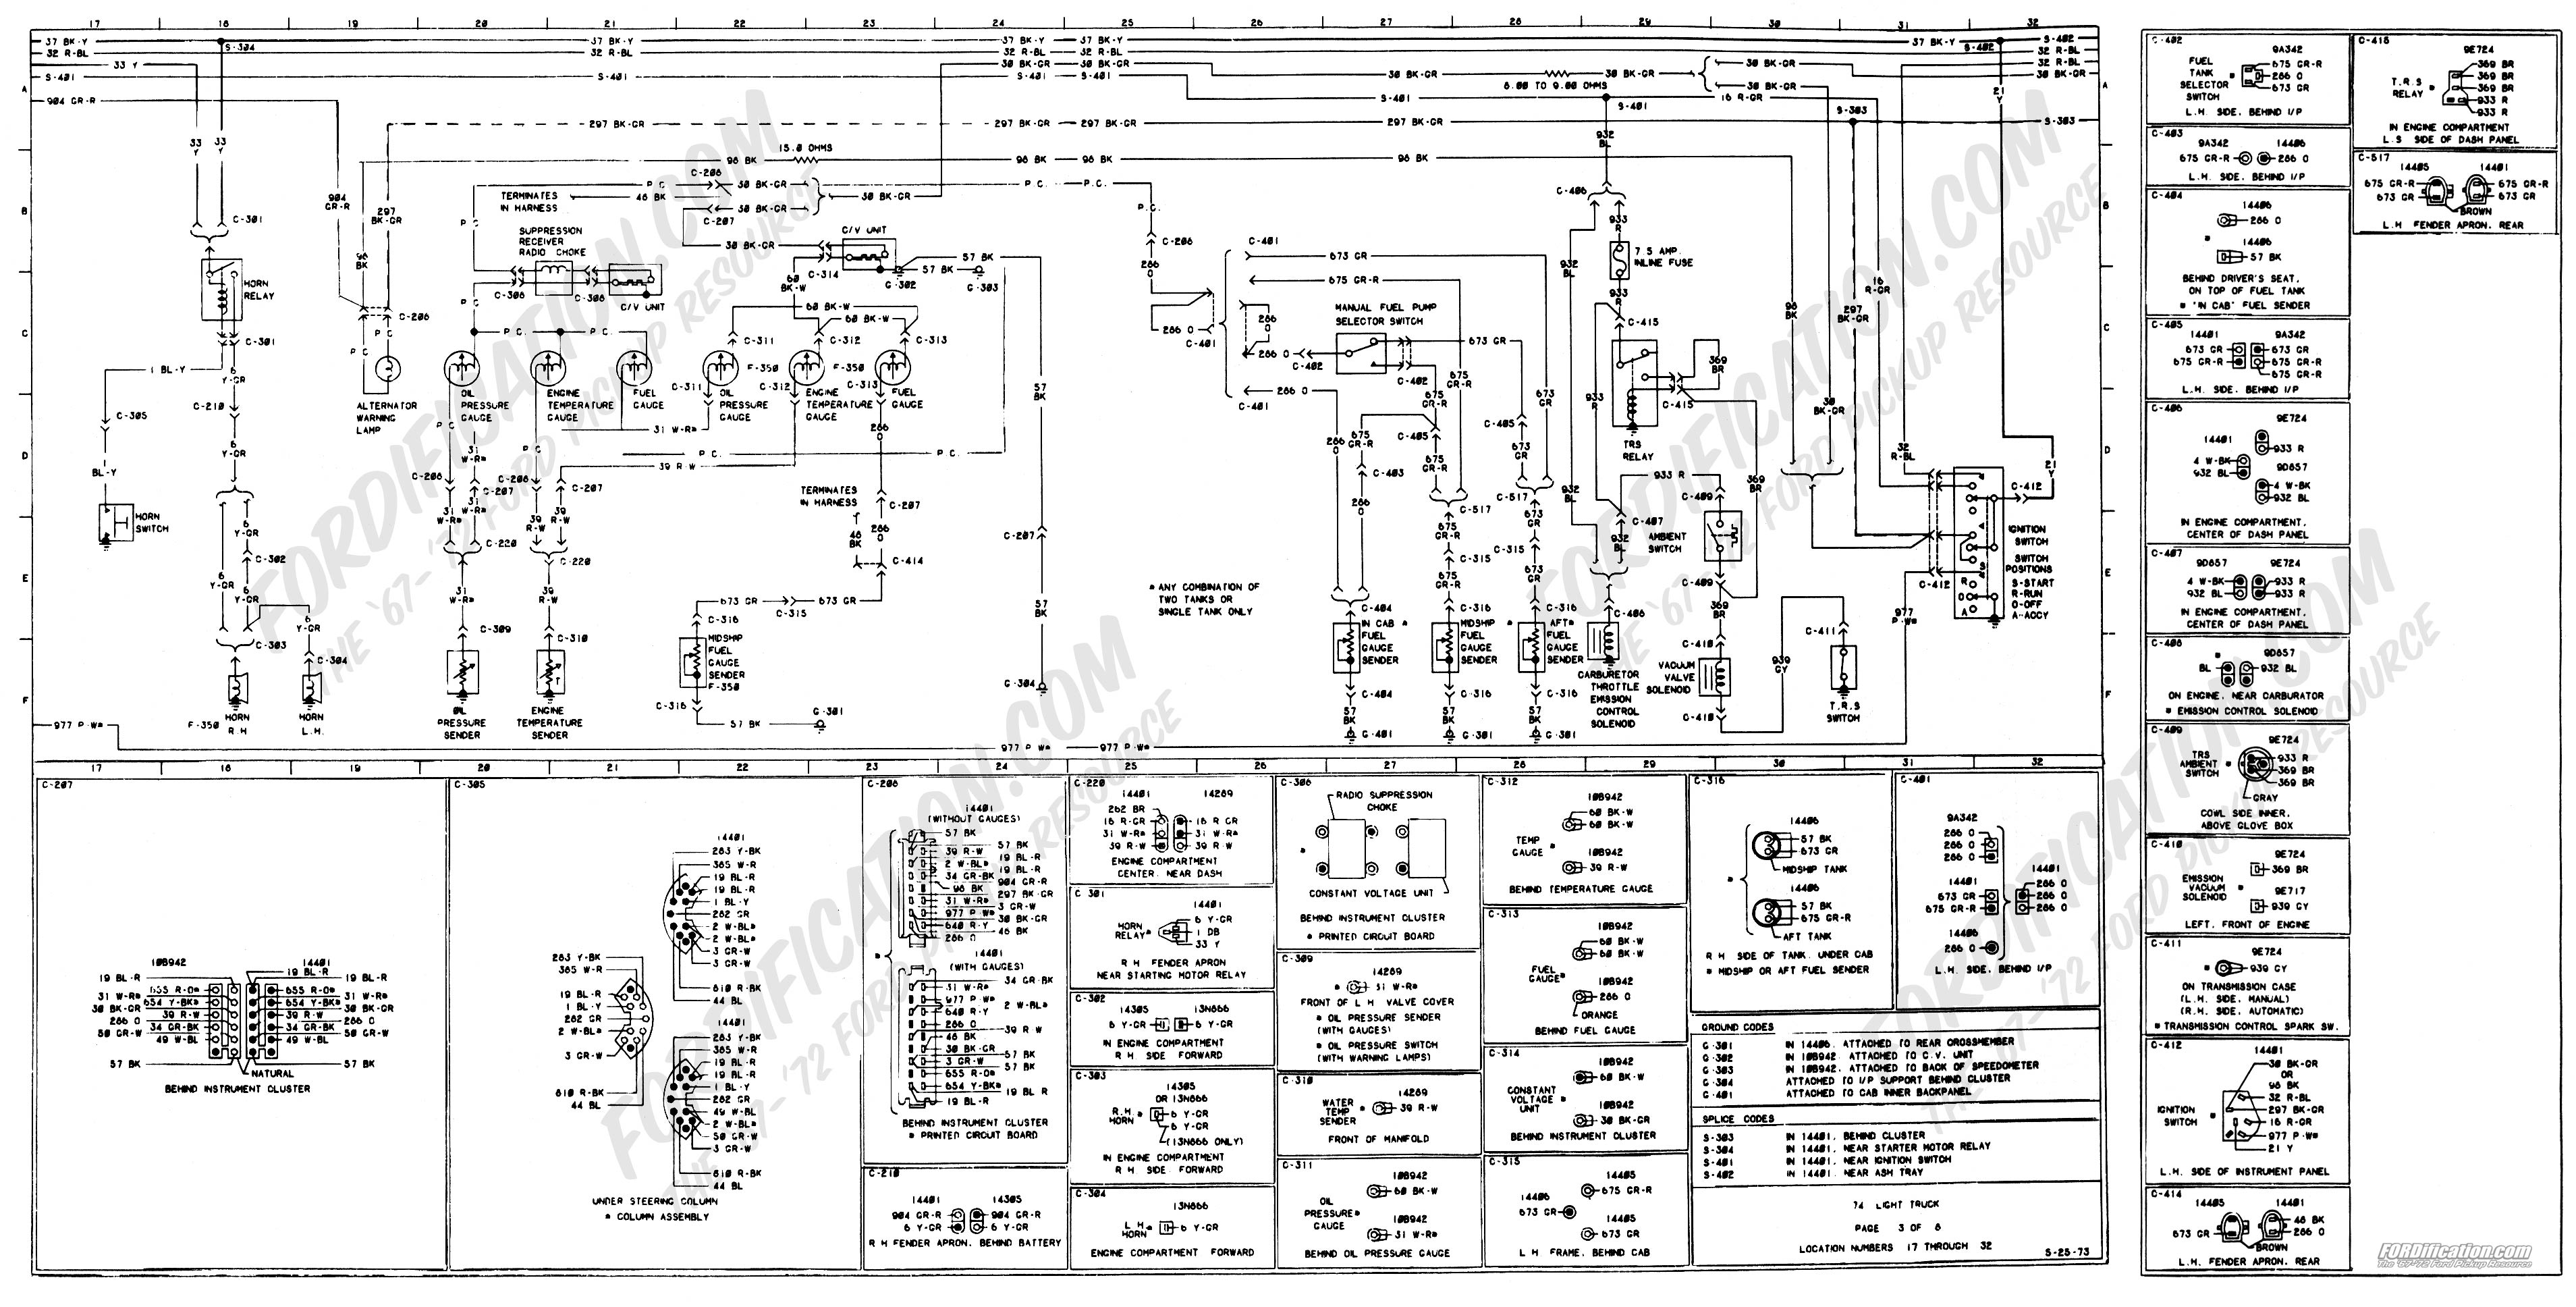 wiring_74master_3of8 1973 1979 ford truck wiring diagrams & schematics fordification net Ford 545C Tractor at n-0.co